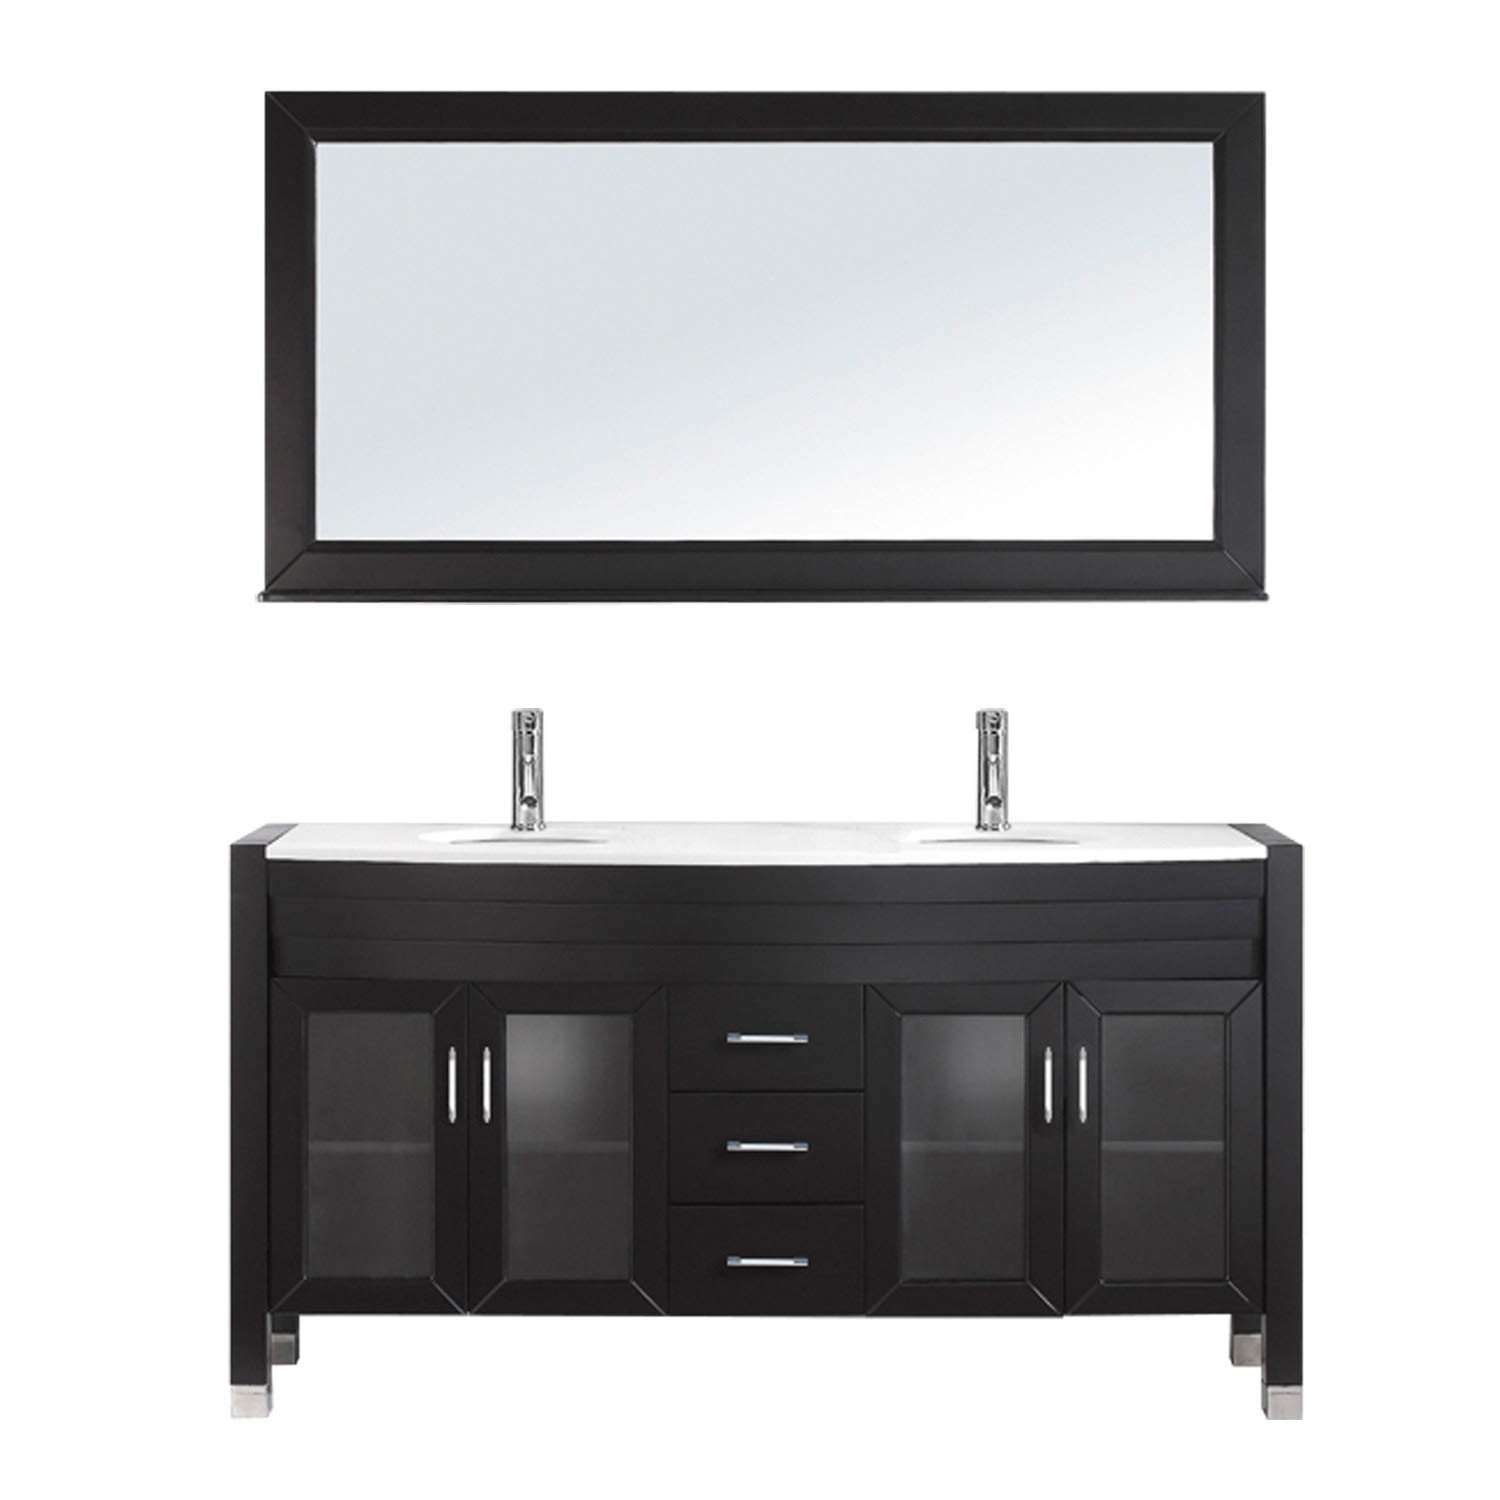 Virtu USA Ava 63 inch Double Sink Bathroom Vanity Set in Espresso w// Integrated Round Sink White Engineered Stone Countertop 1 Mirror Single Hole Polished Chrome MD-499-S-ES